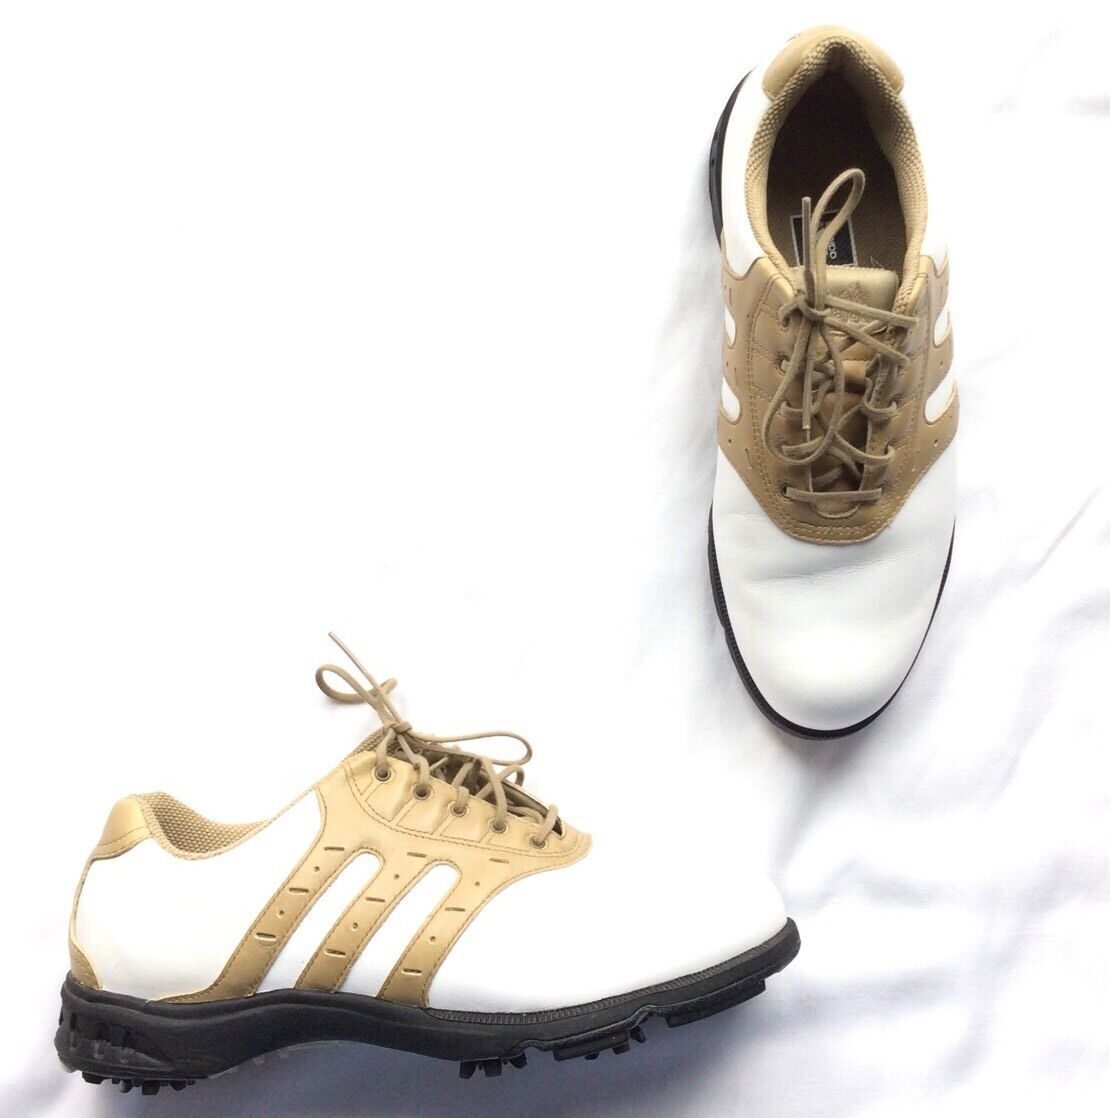 Golf Shoes Adidas Traxion Torsion System Adiprene Sz 8 M Oxford Style Two Tone Seasonal clearance sale